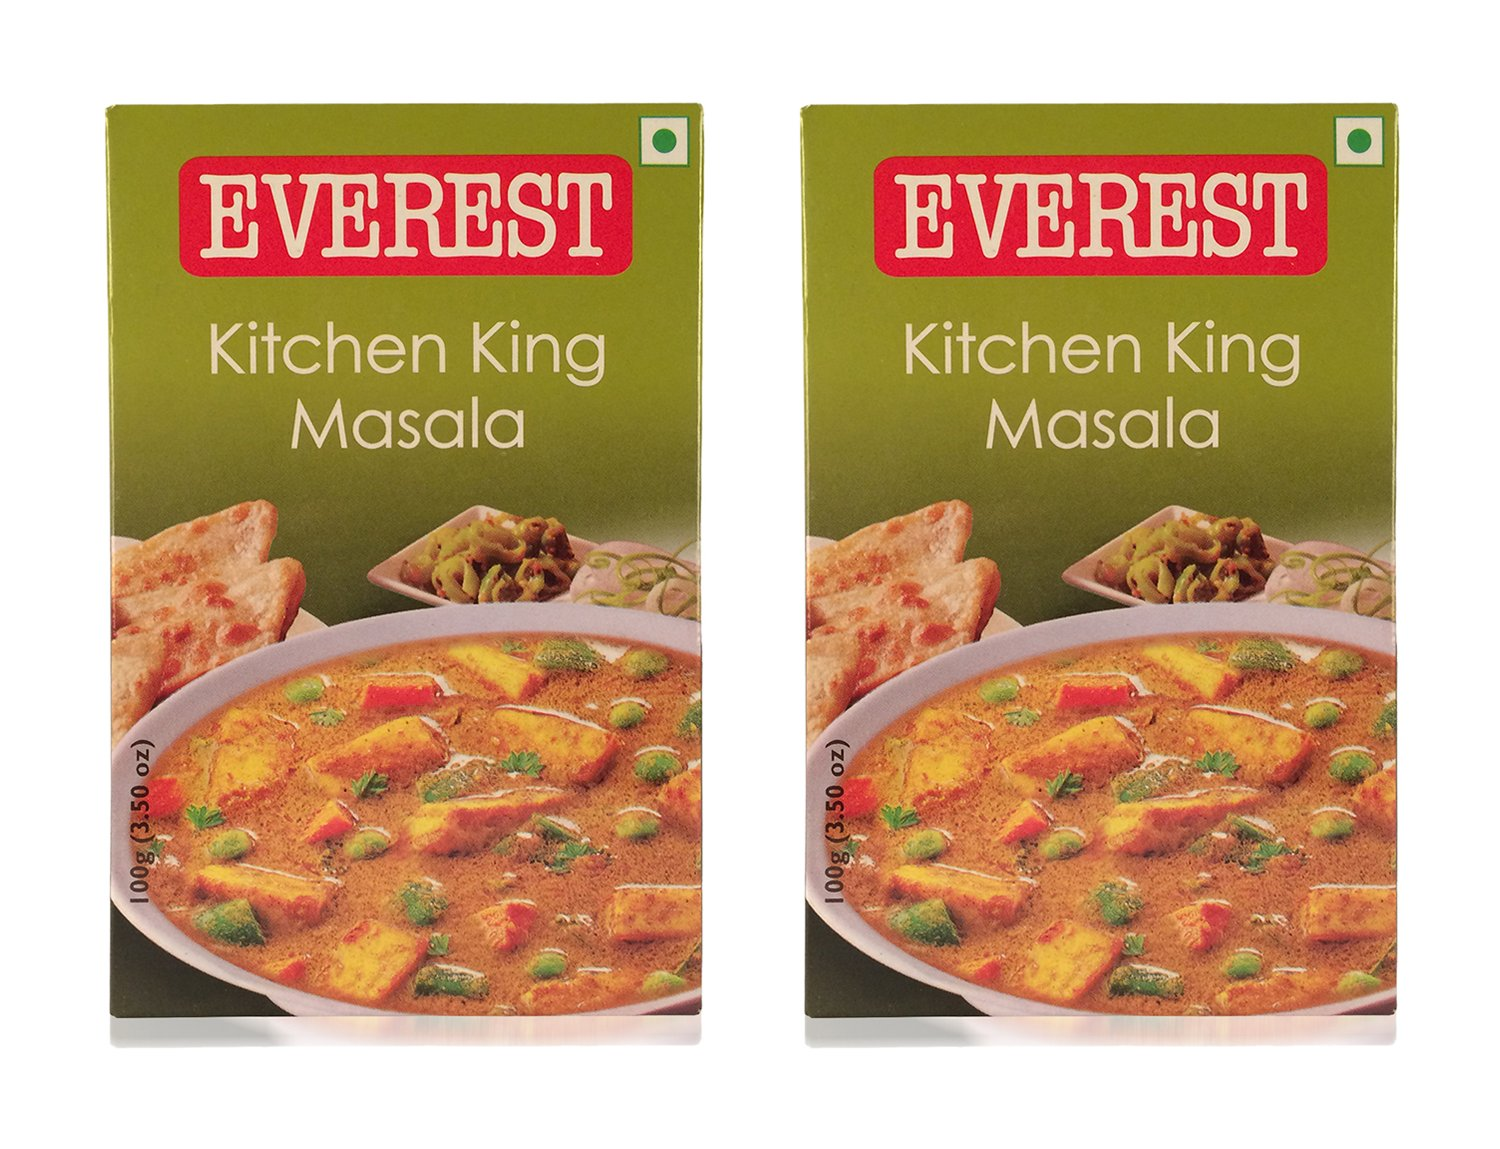 amazoncom everest kitchen king masala 100 grams grocery gourmet food - Masala Kitchen